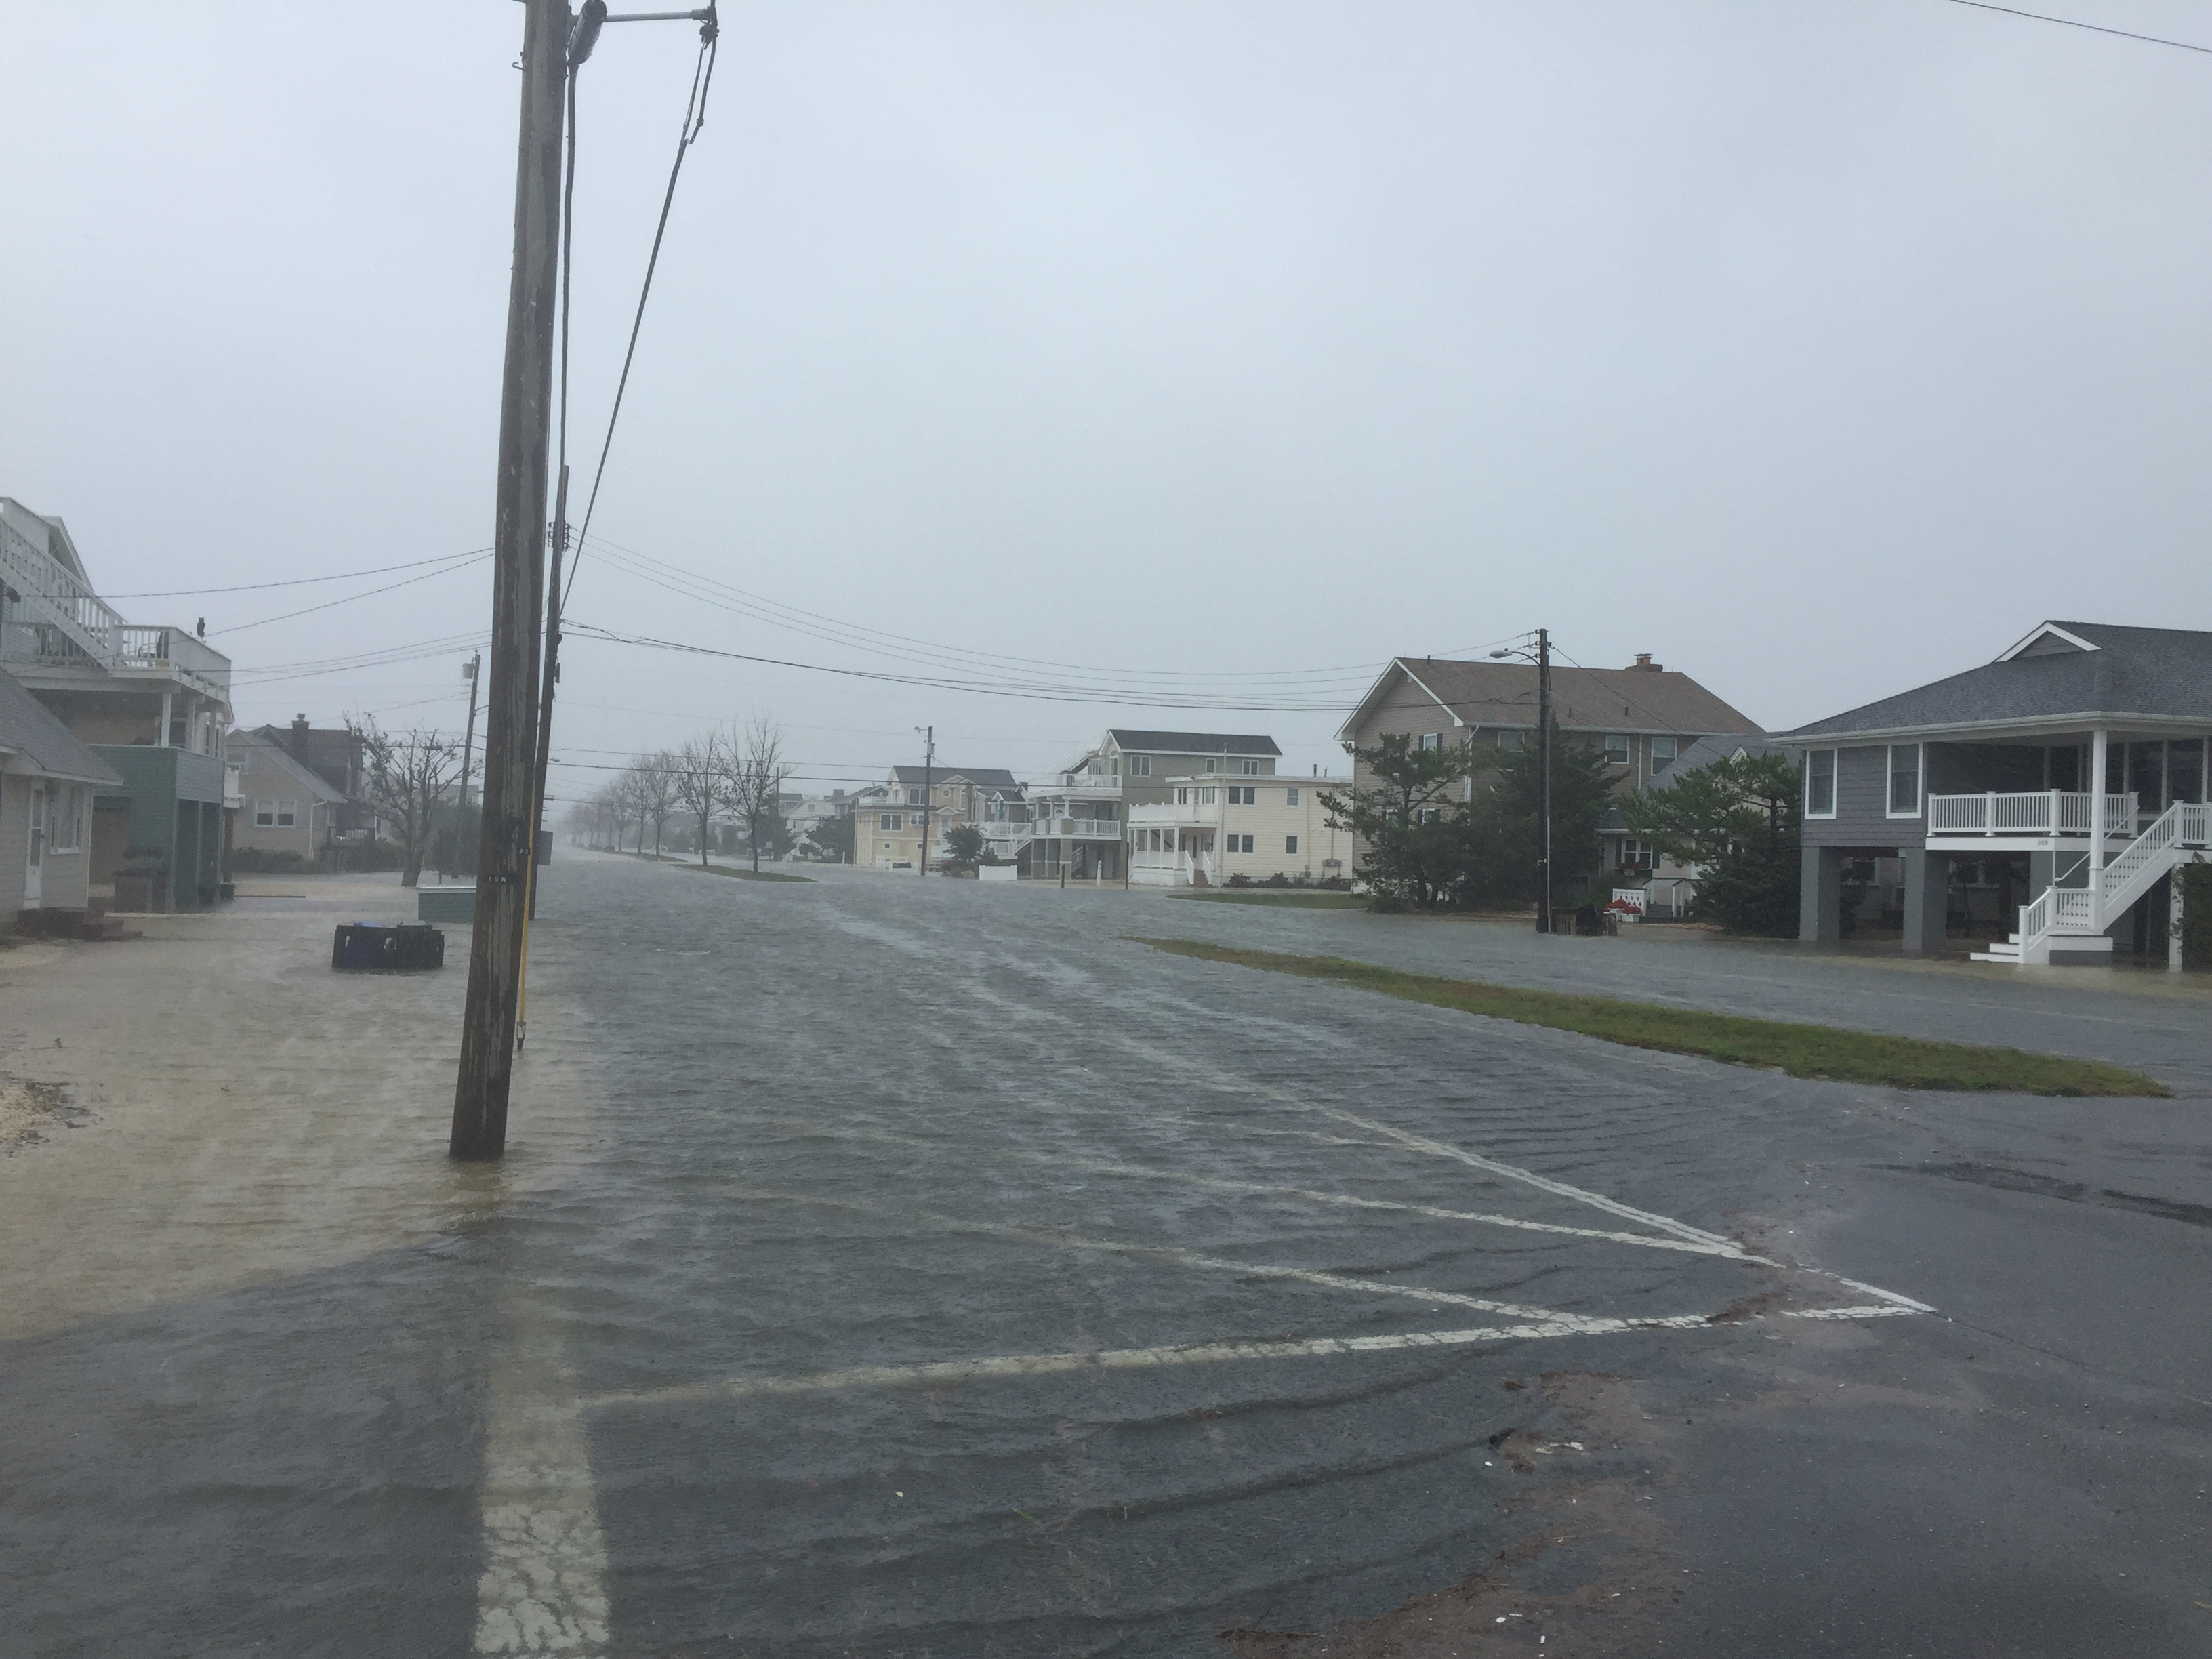 Barrier island flooding in Ocean County during the Oct. 2015 nor'easter. (Photo: Daniel Nee)